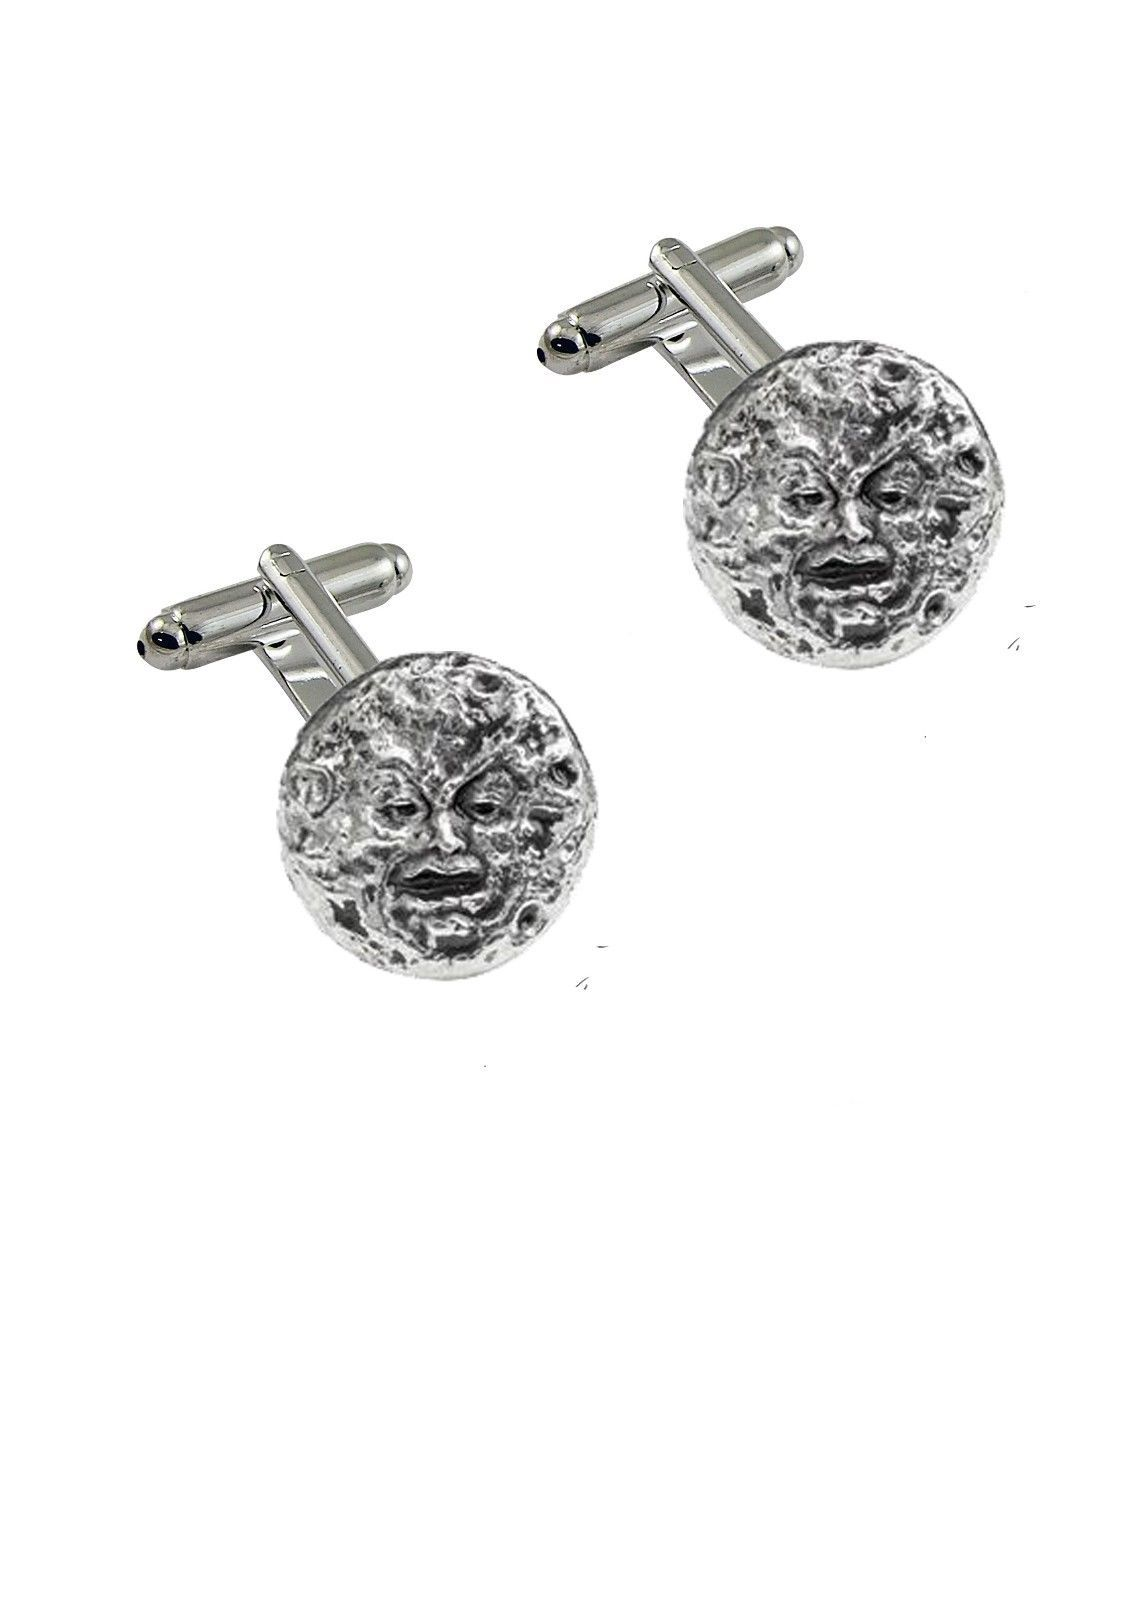 Primary image for Man In The Moon Pewter on Cufflinks cufflink Jewellery Suit wedding d27 M'era Lu